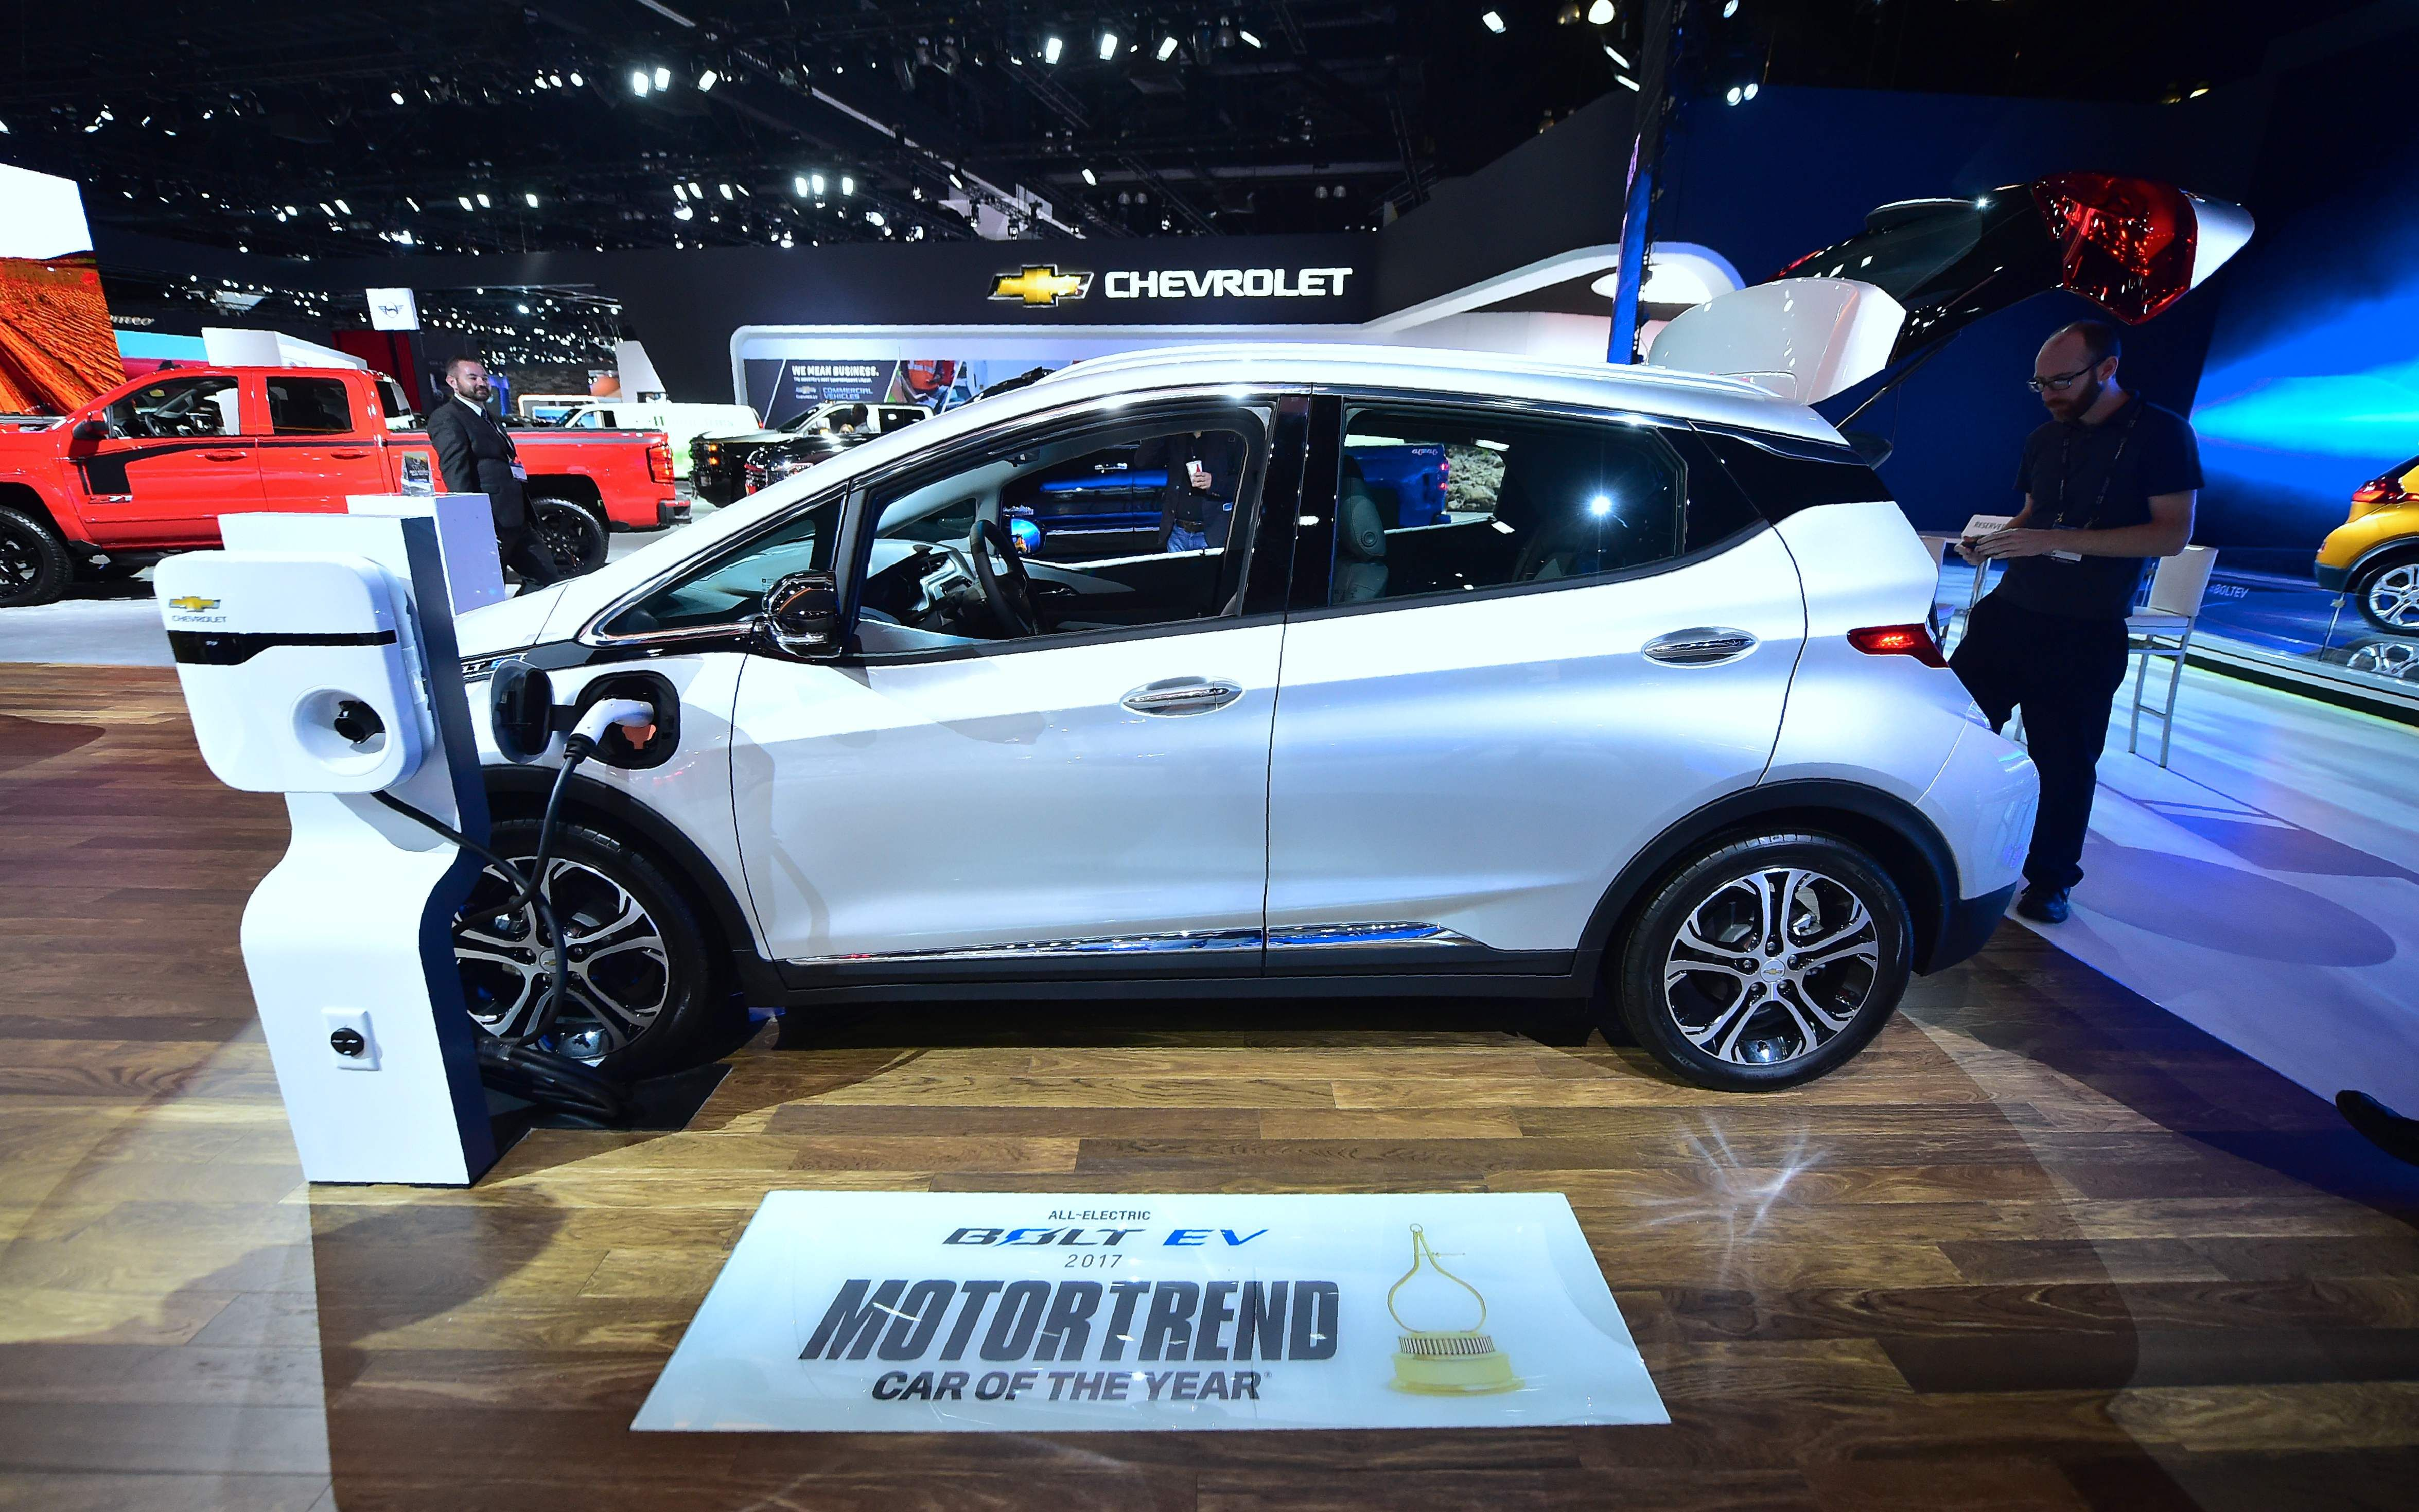 Chevy Bolt s top car award Pacifica top utility vehicle